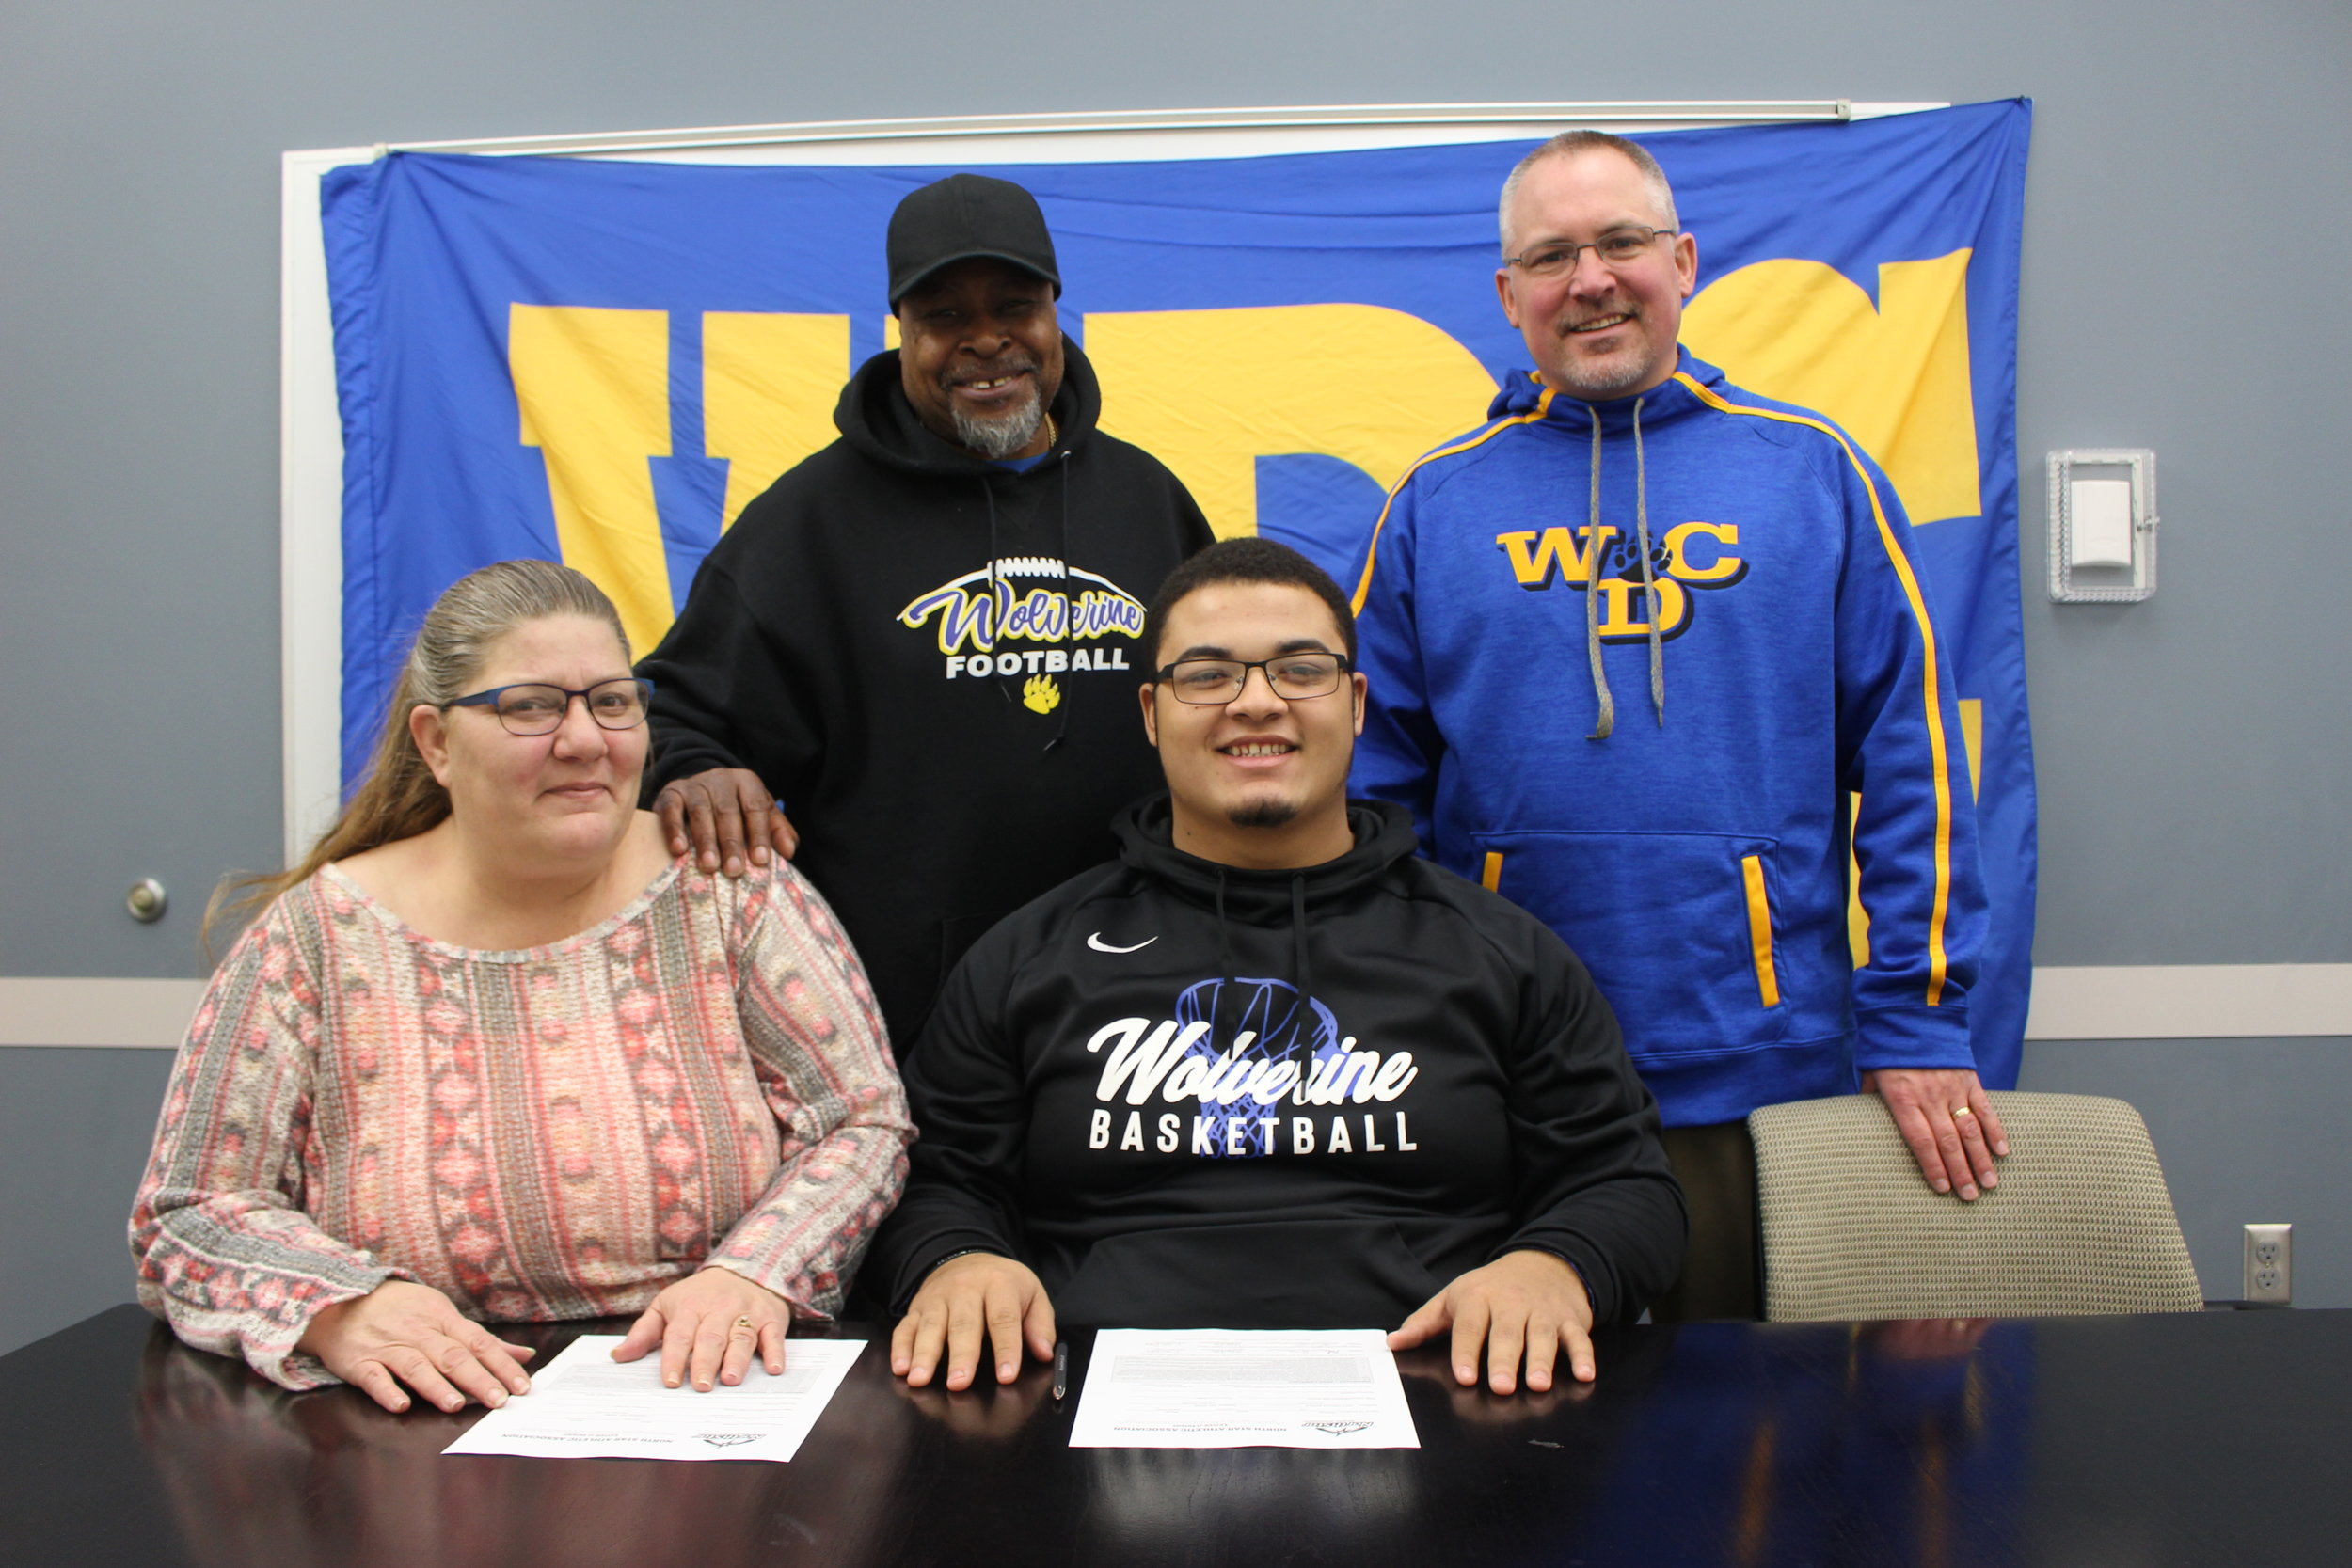 Pictured at the signing, sitting: Steven Thomas and his mom, Victoria Hunt; standing, from left, Abra Hunt, Steven's dad, and Norm Gallant, WDC activities director/assistant football coach. Signing photos by Dana Cantleberry, WDC Schools.